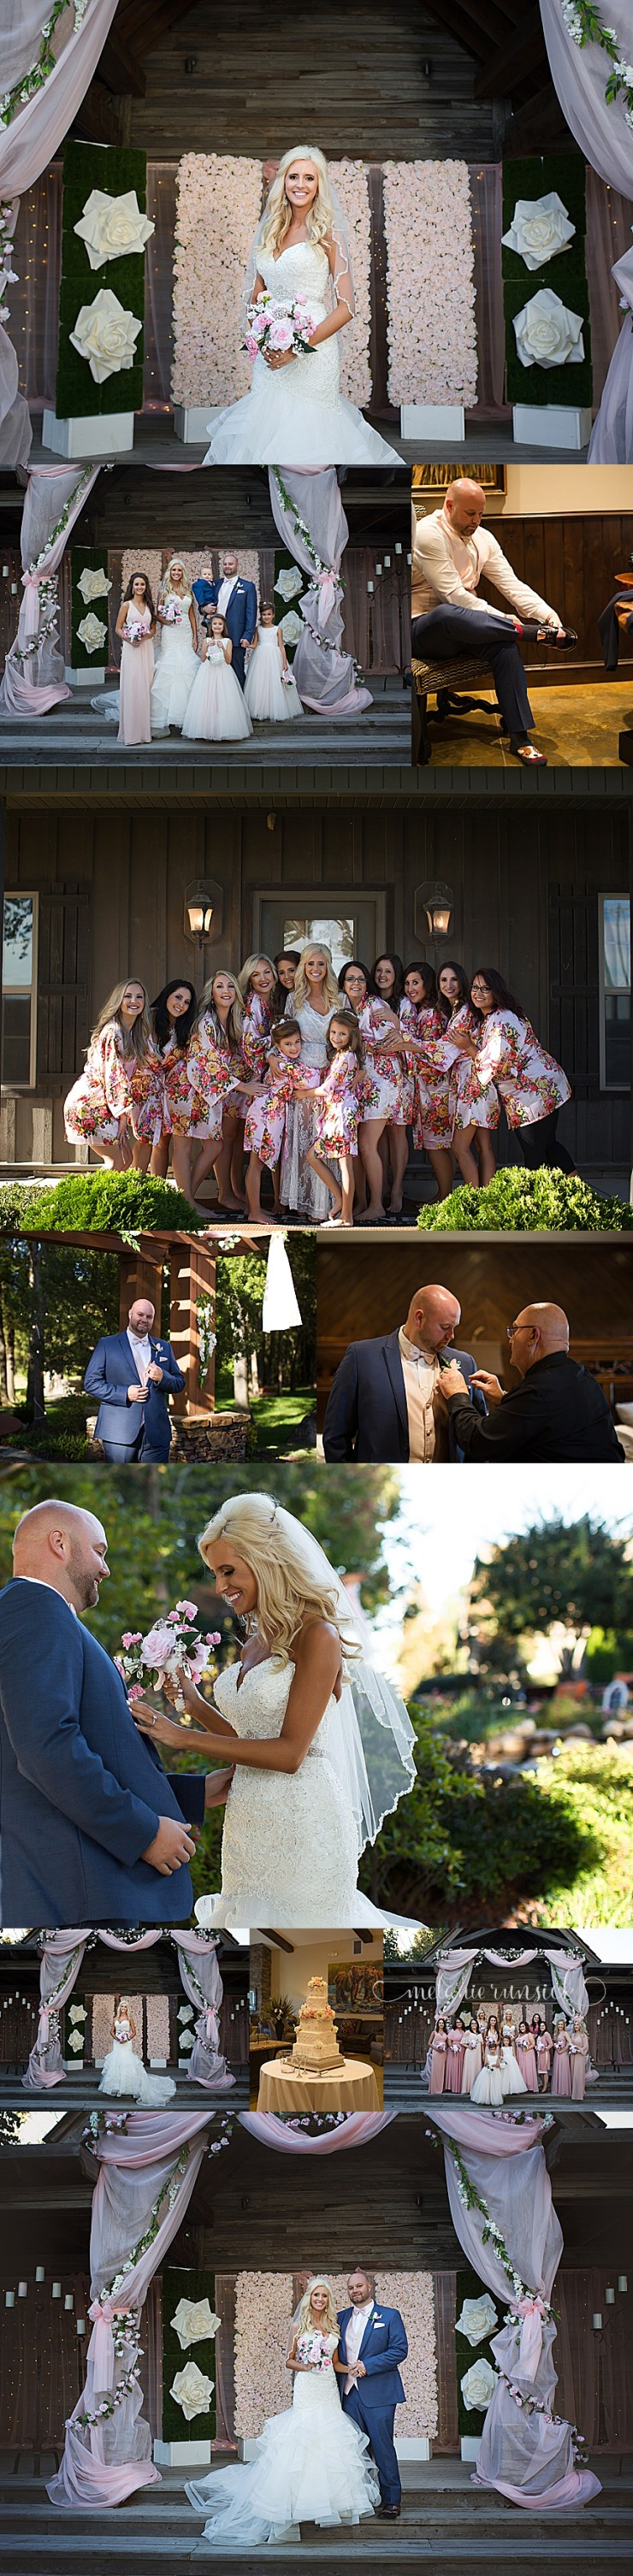 Jonesboro Wedding Photographer Melanie Runsick Photography